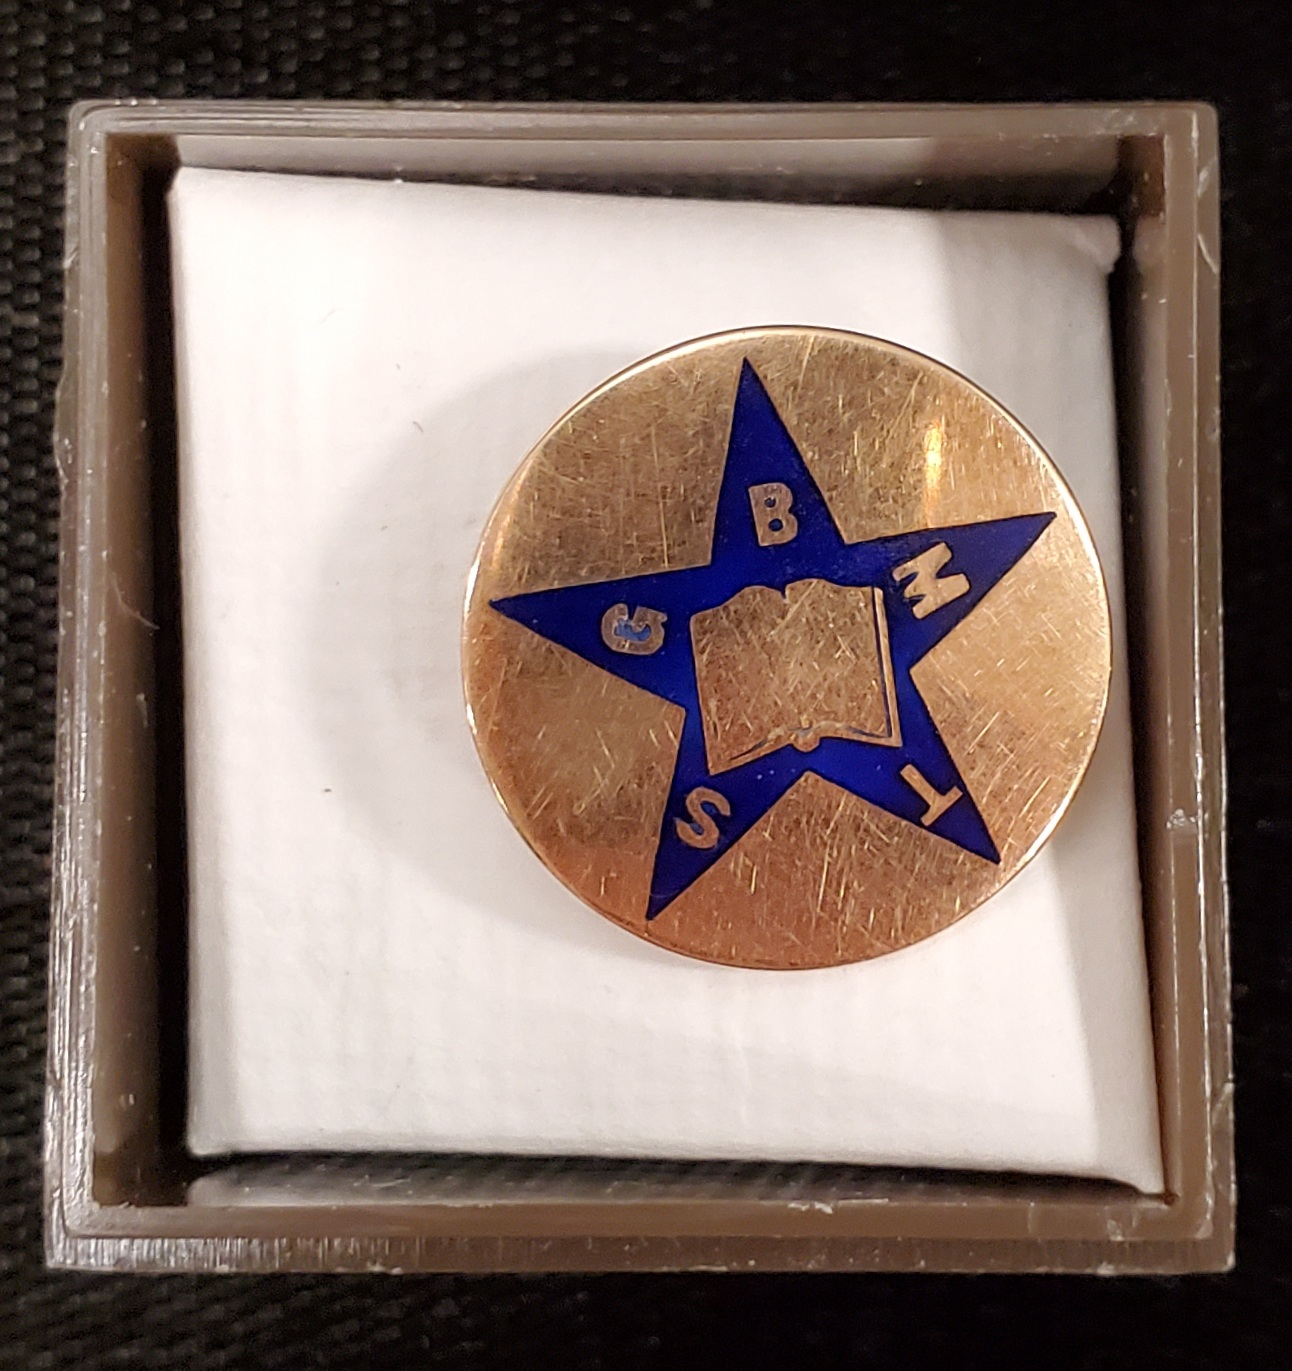 Pin that features a blue star with an open bible at the center. Each point of the star has a letter: G B M T S.